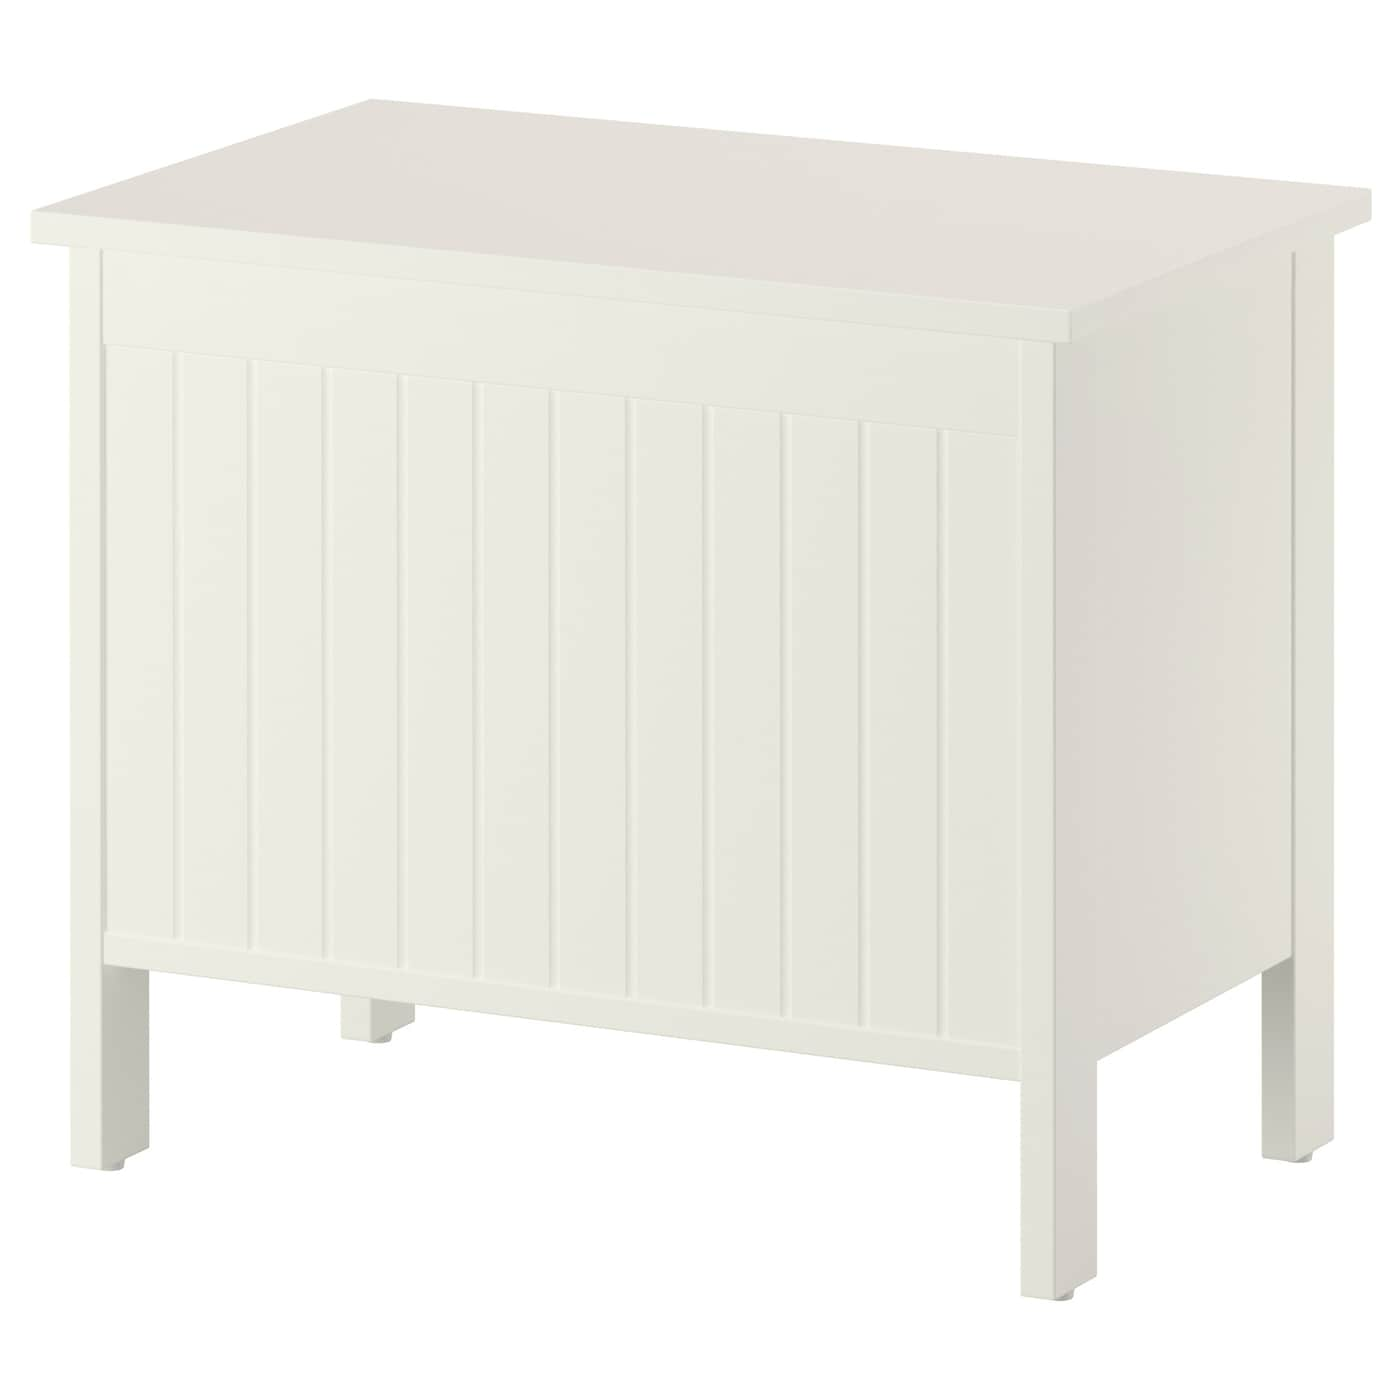 SilverÅn White Storage Bench Ikea